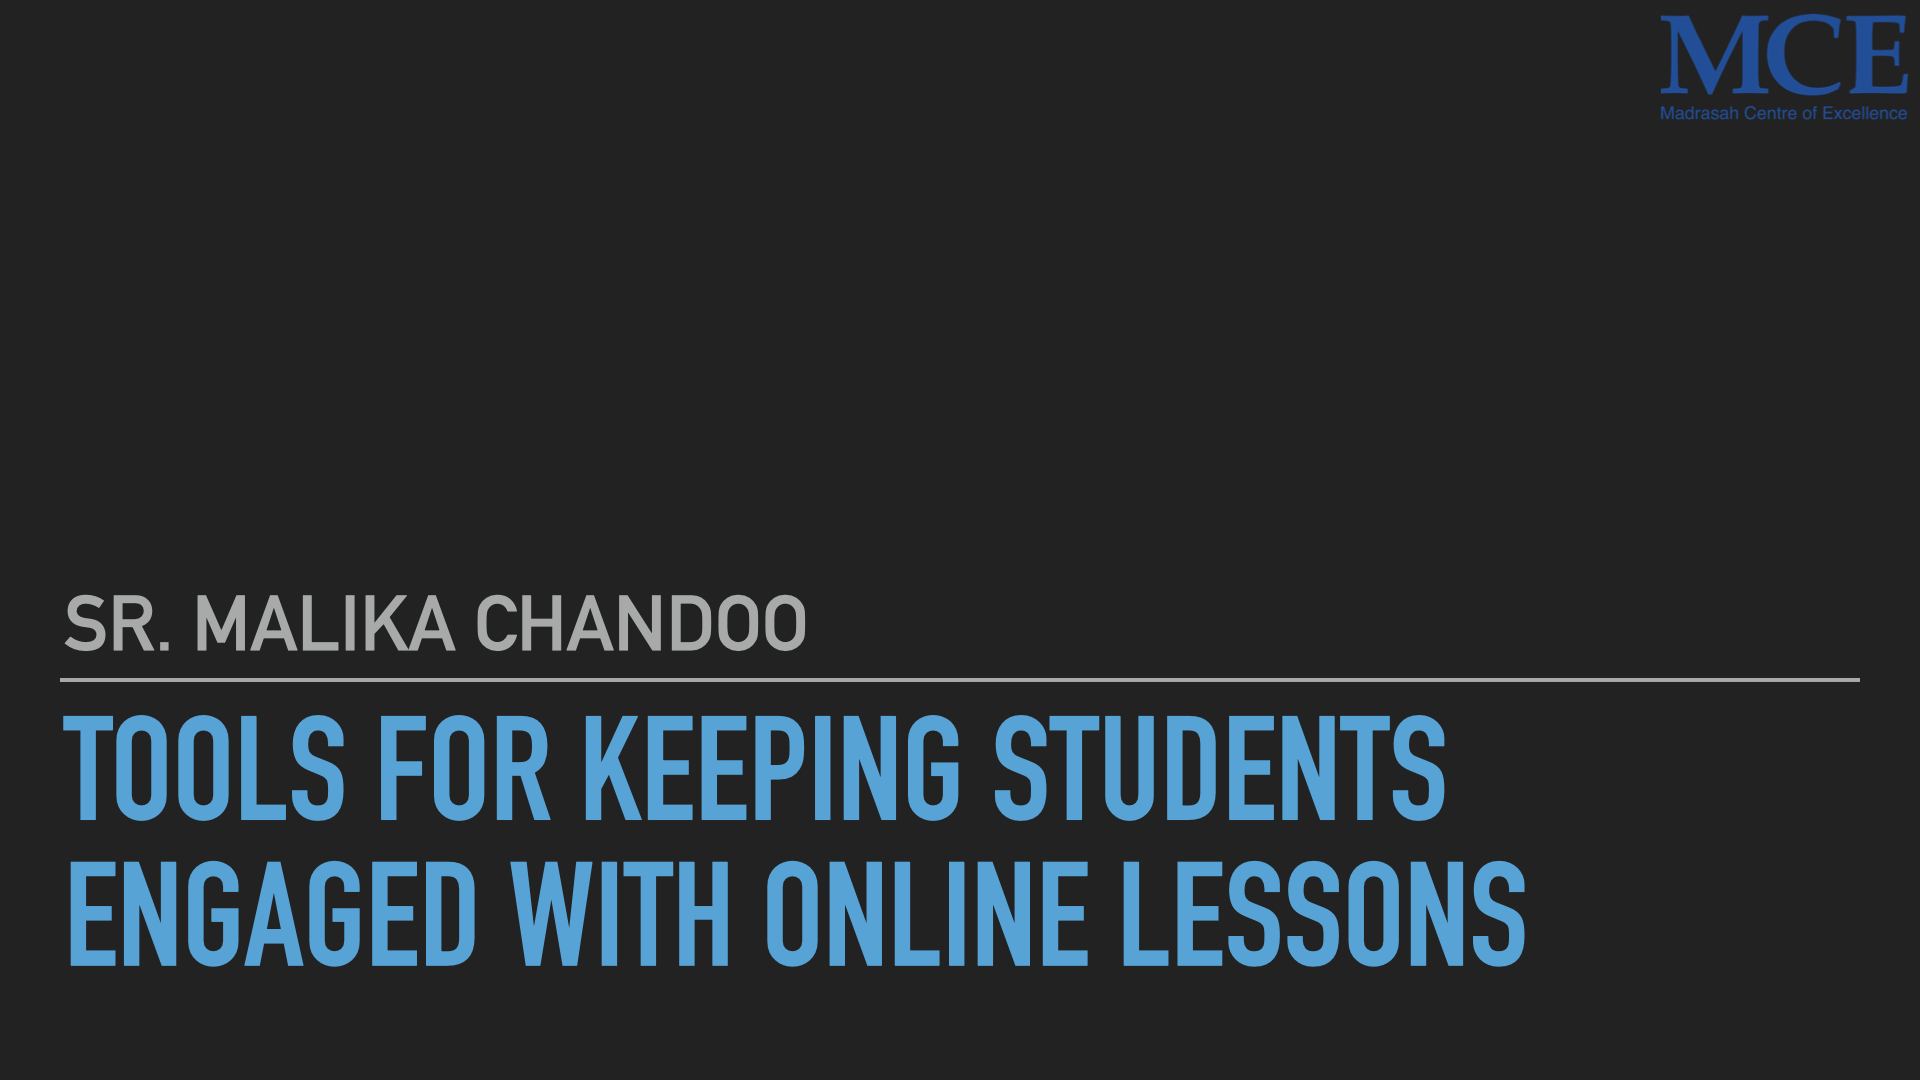 Tools for keeping students interacting with online lessons